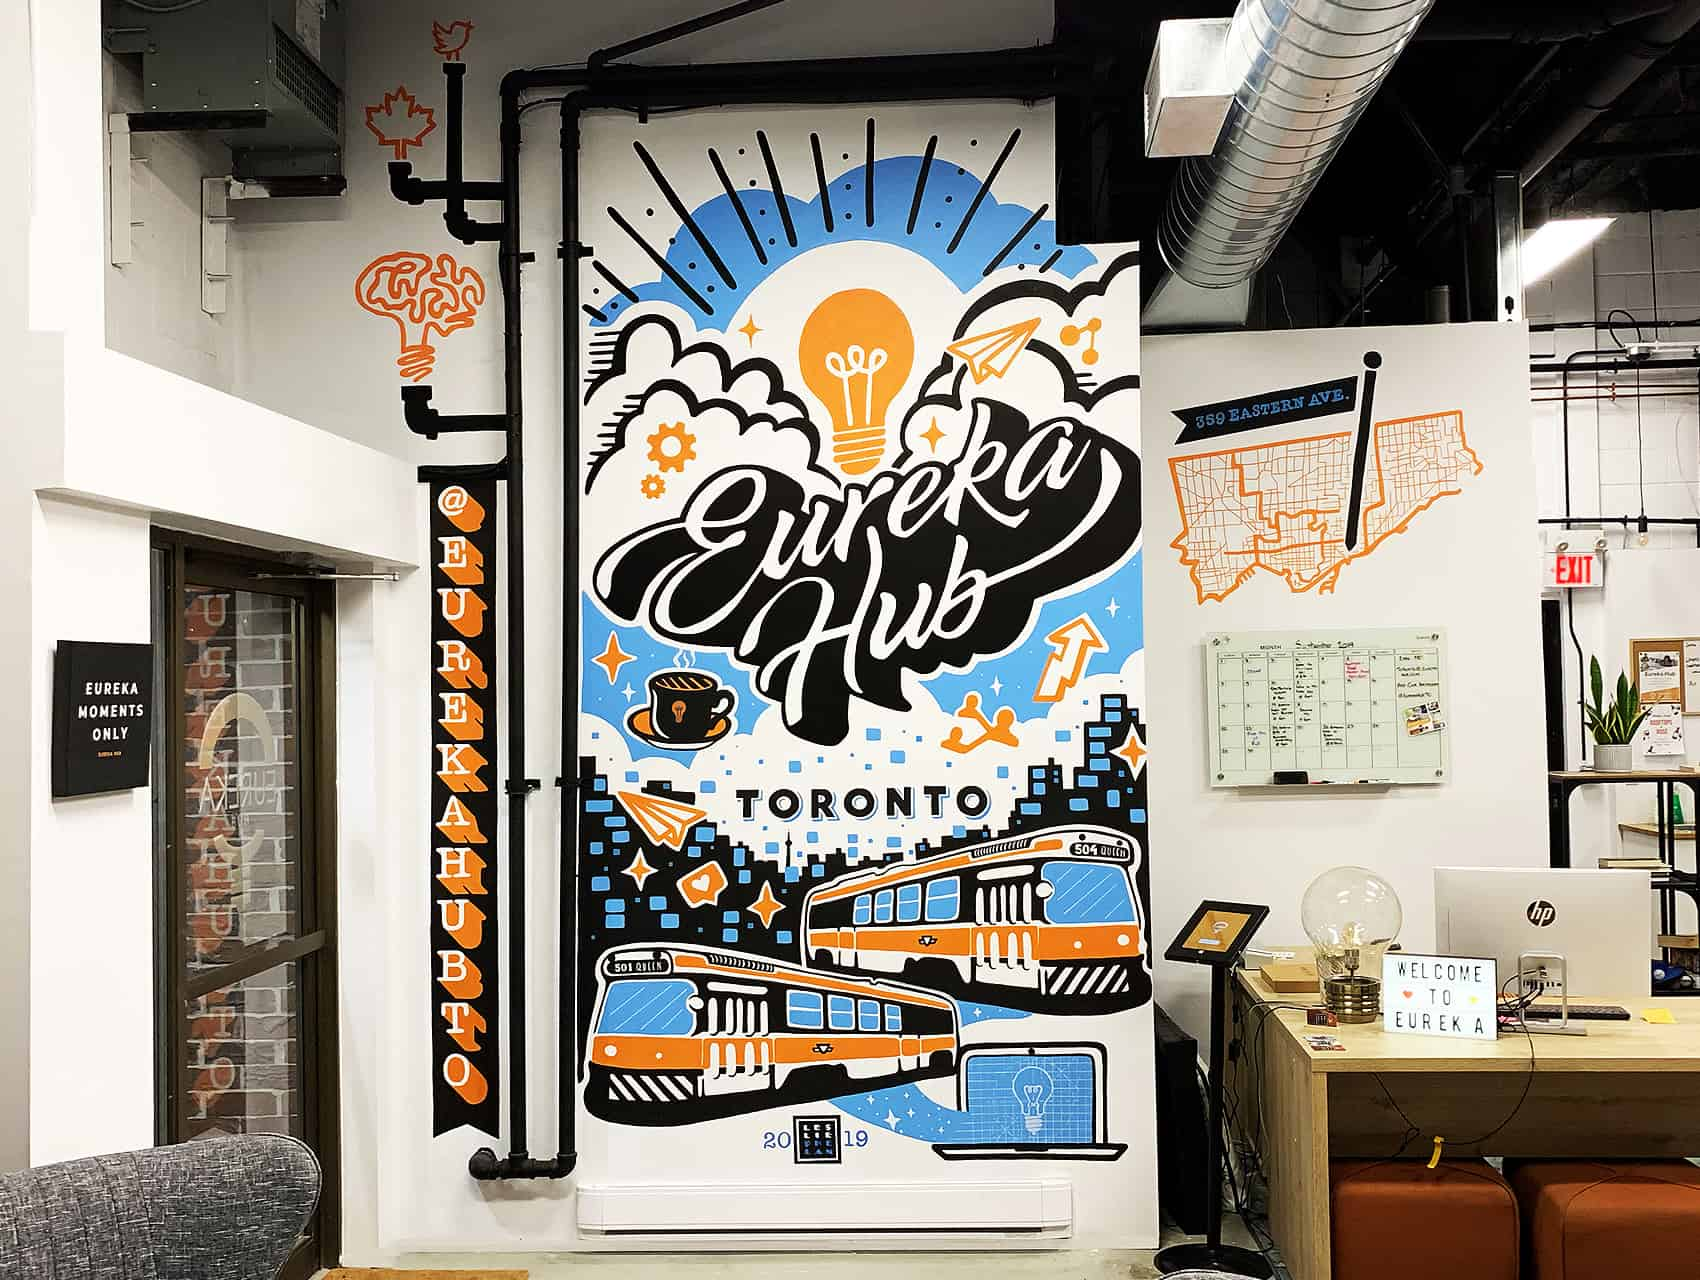 office mural, office art, coworking space, studio mural, eureka hub toronto